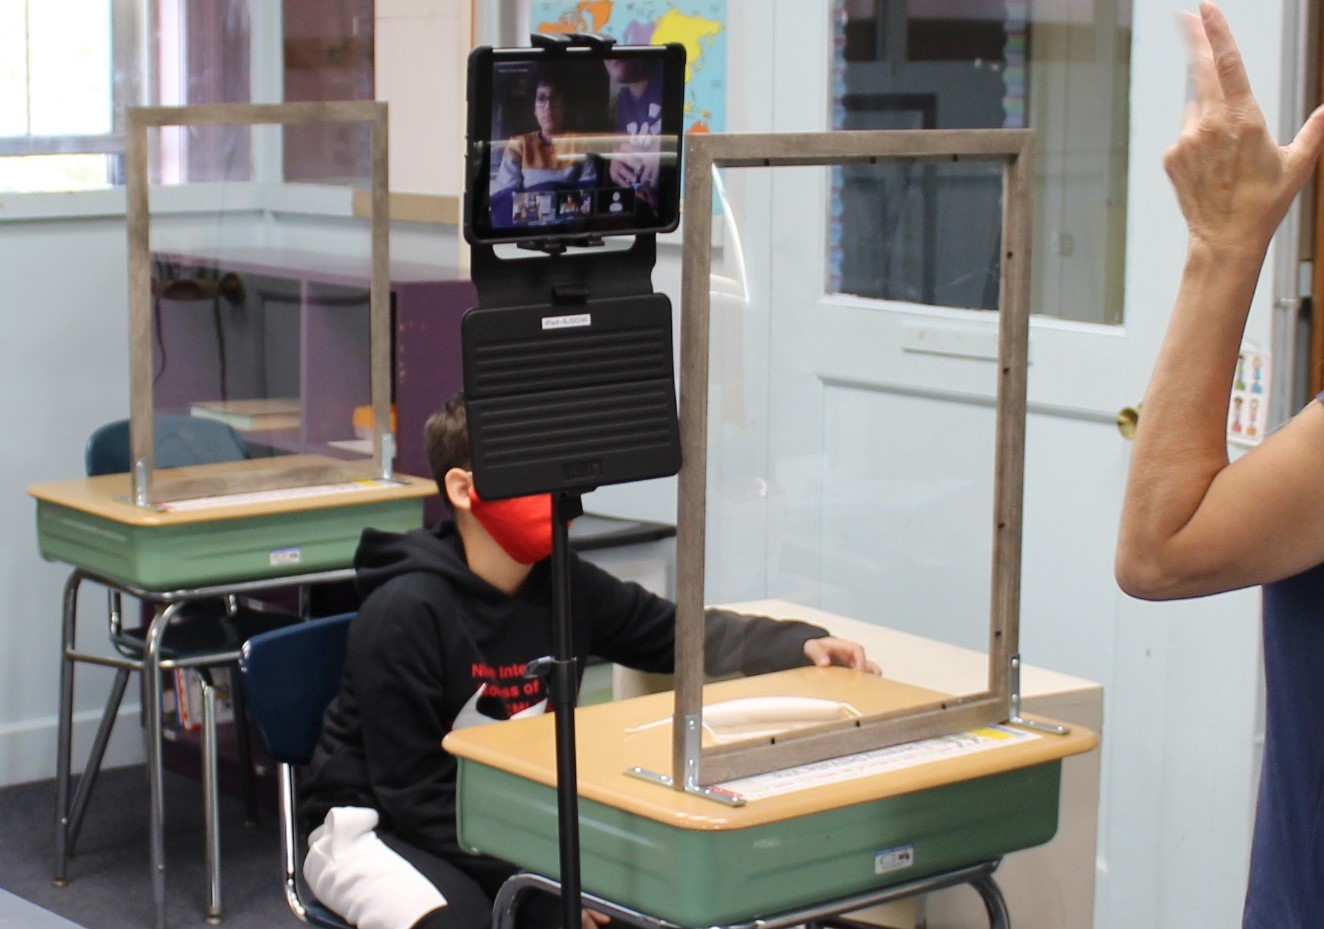 Sstudents use technology to facilitate hydrid learning and to communicate with other students in class during COVID-19.